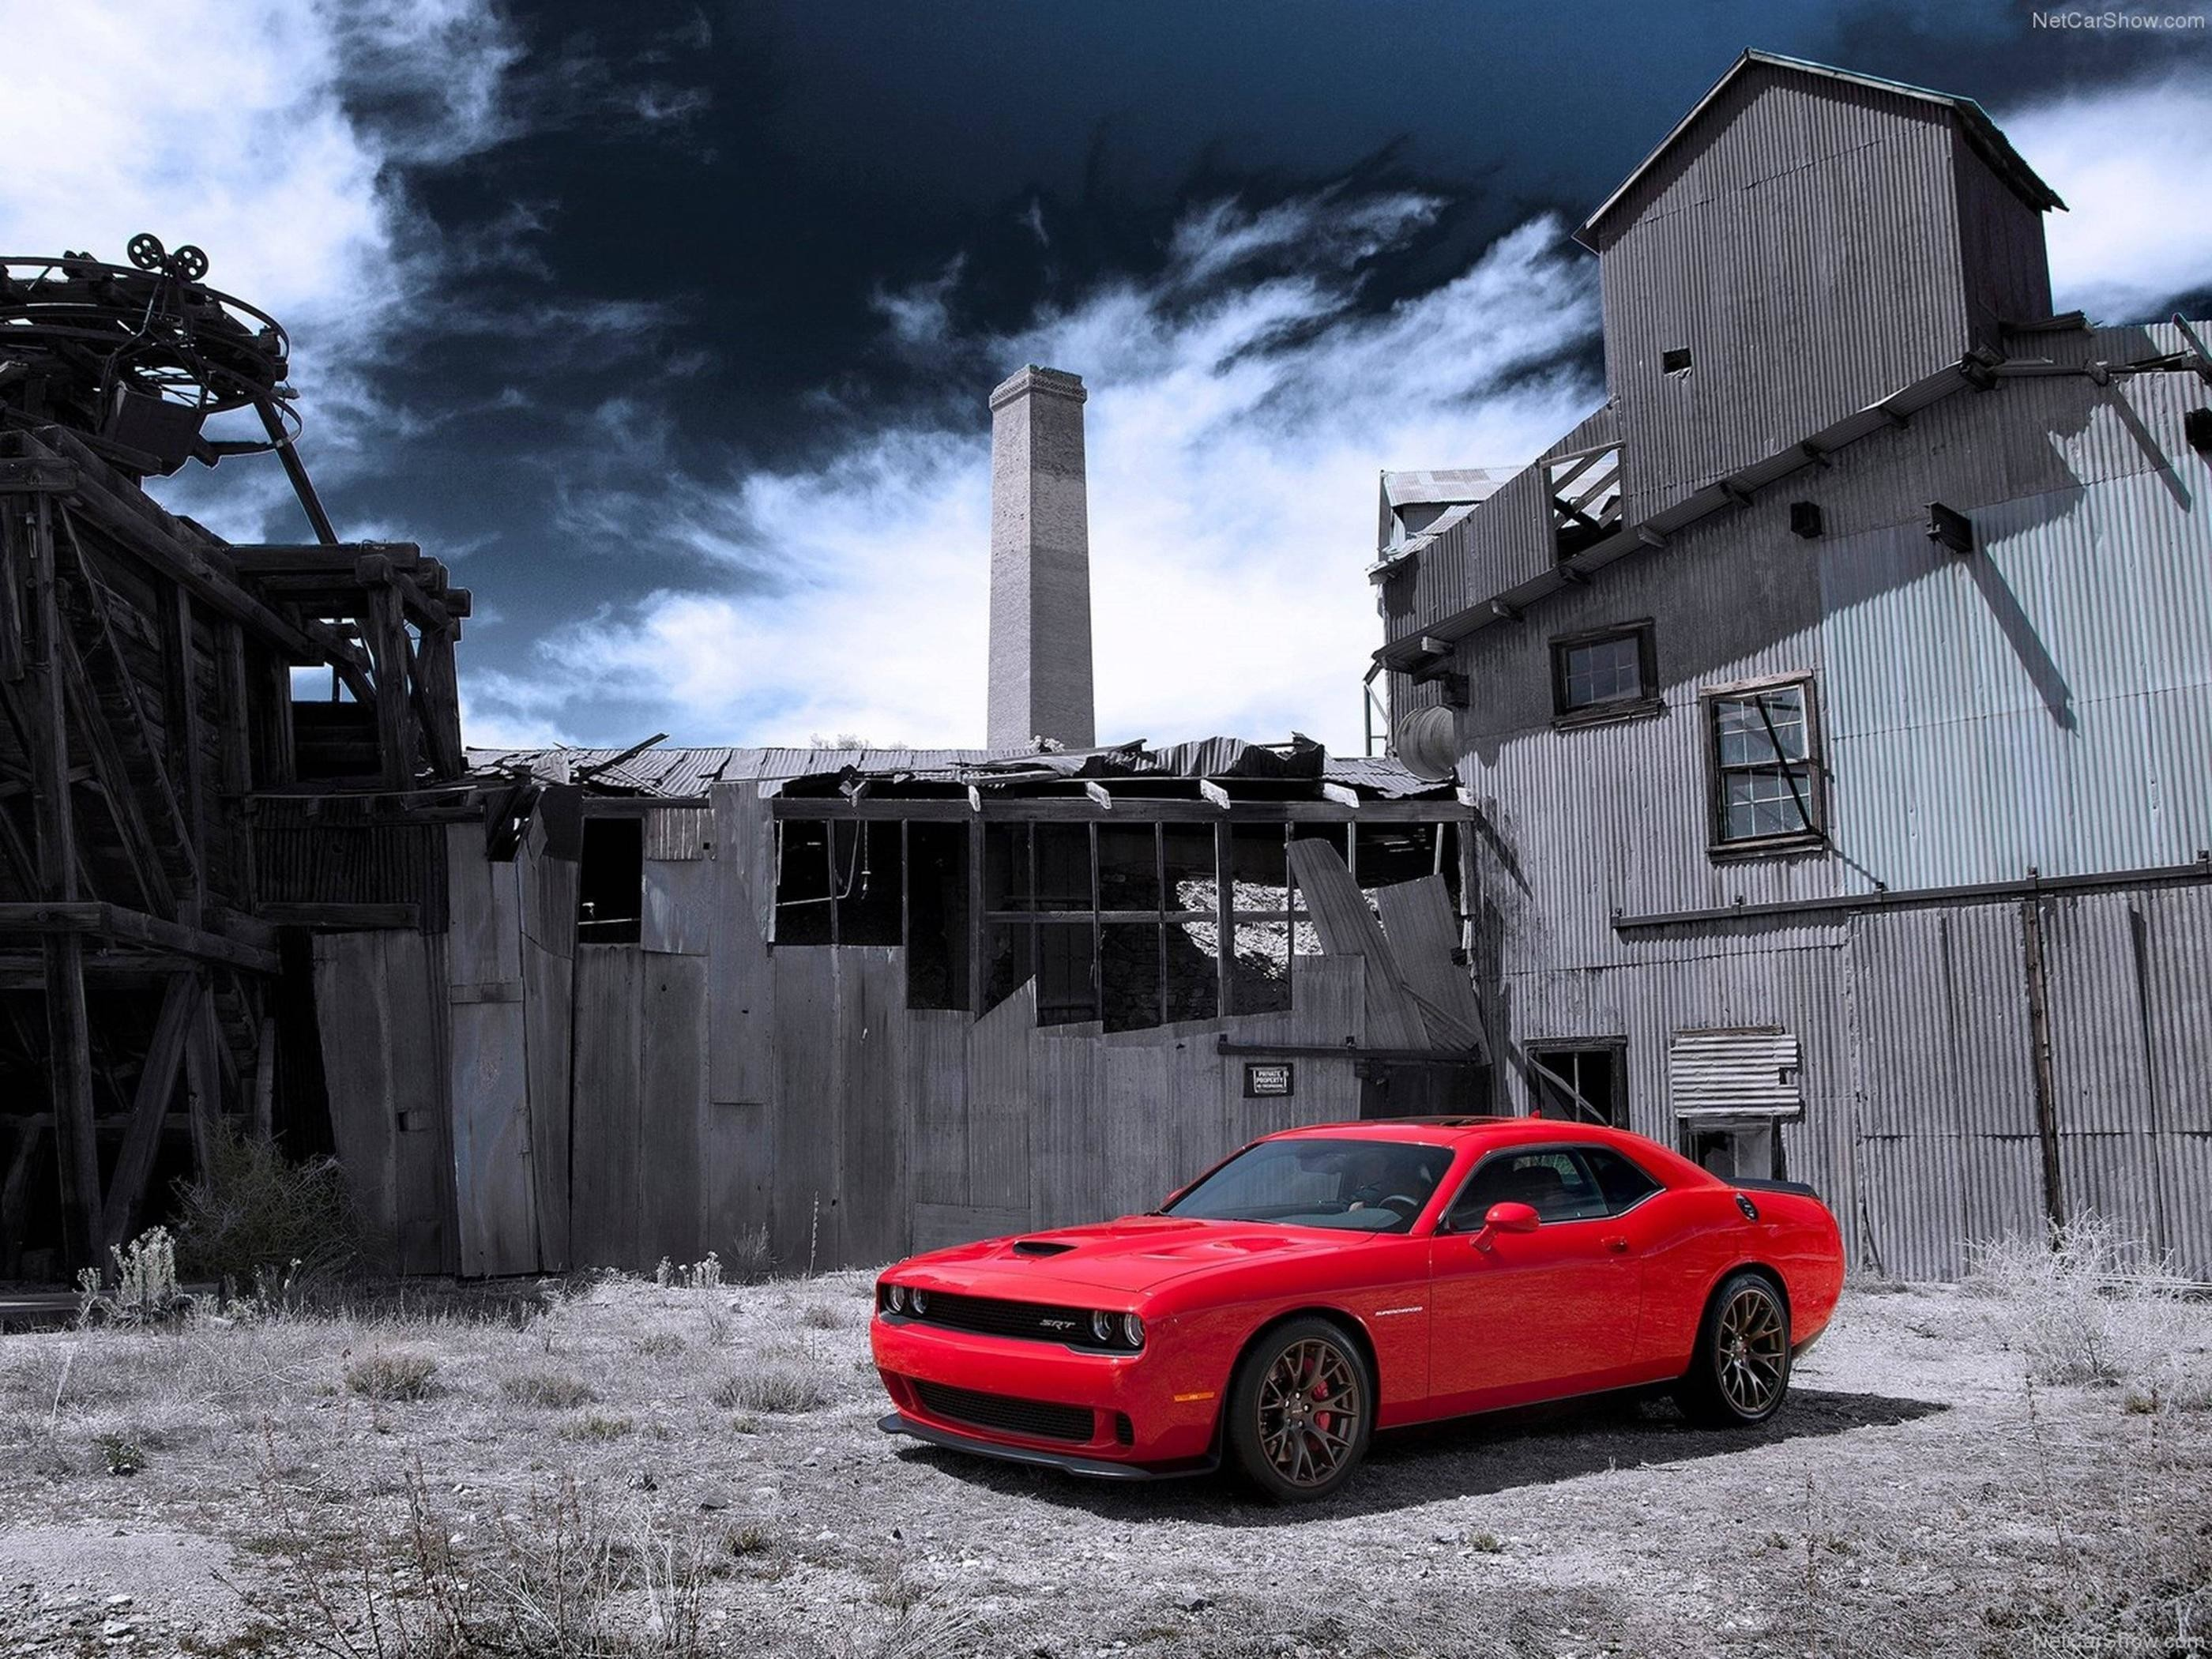 Res: 2800x2100, Dodge Challenger Hellcat Wallpaper #2164 Wallpaper | photosfullhd.